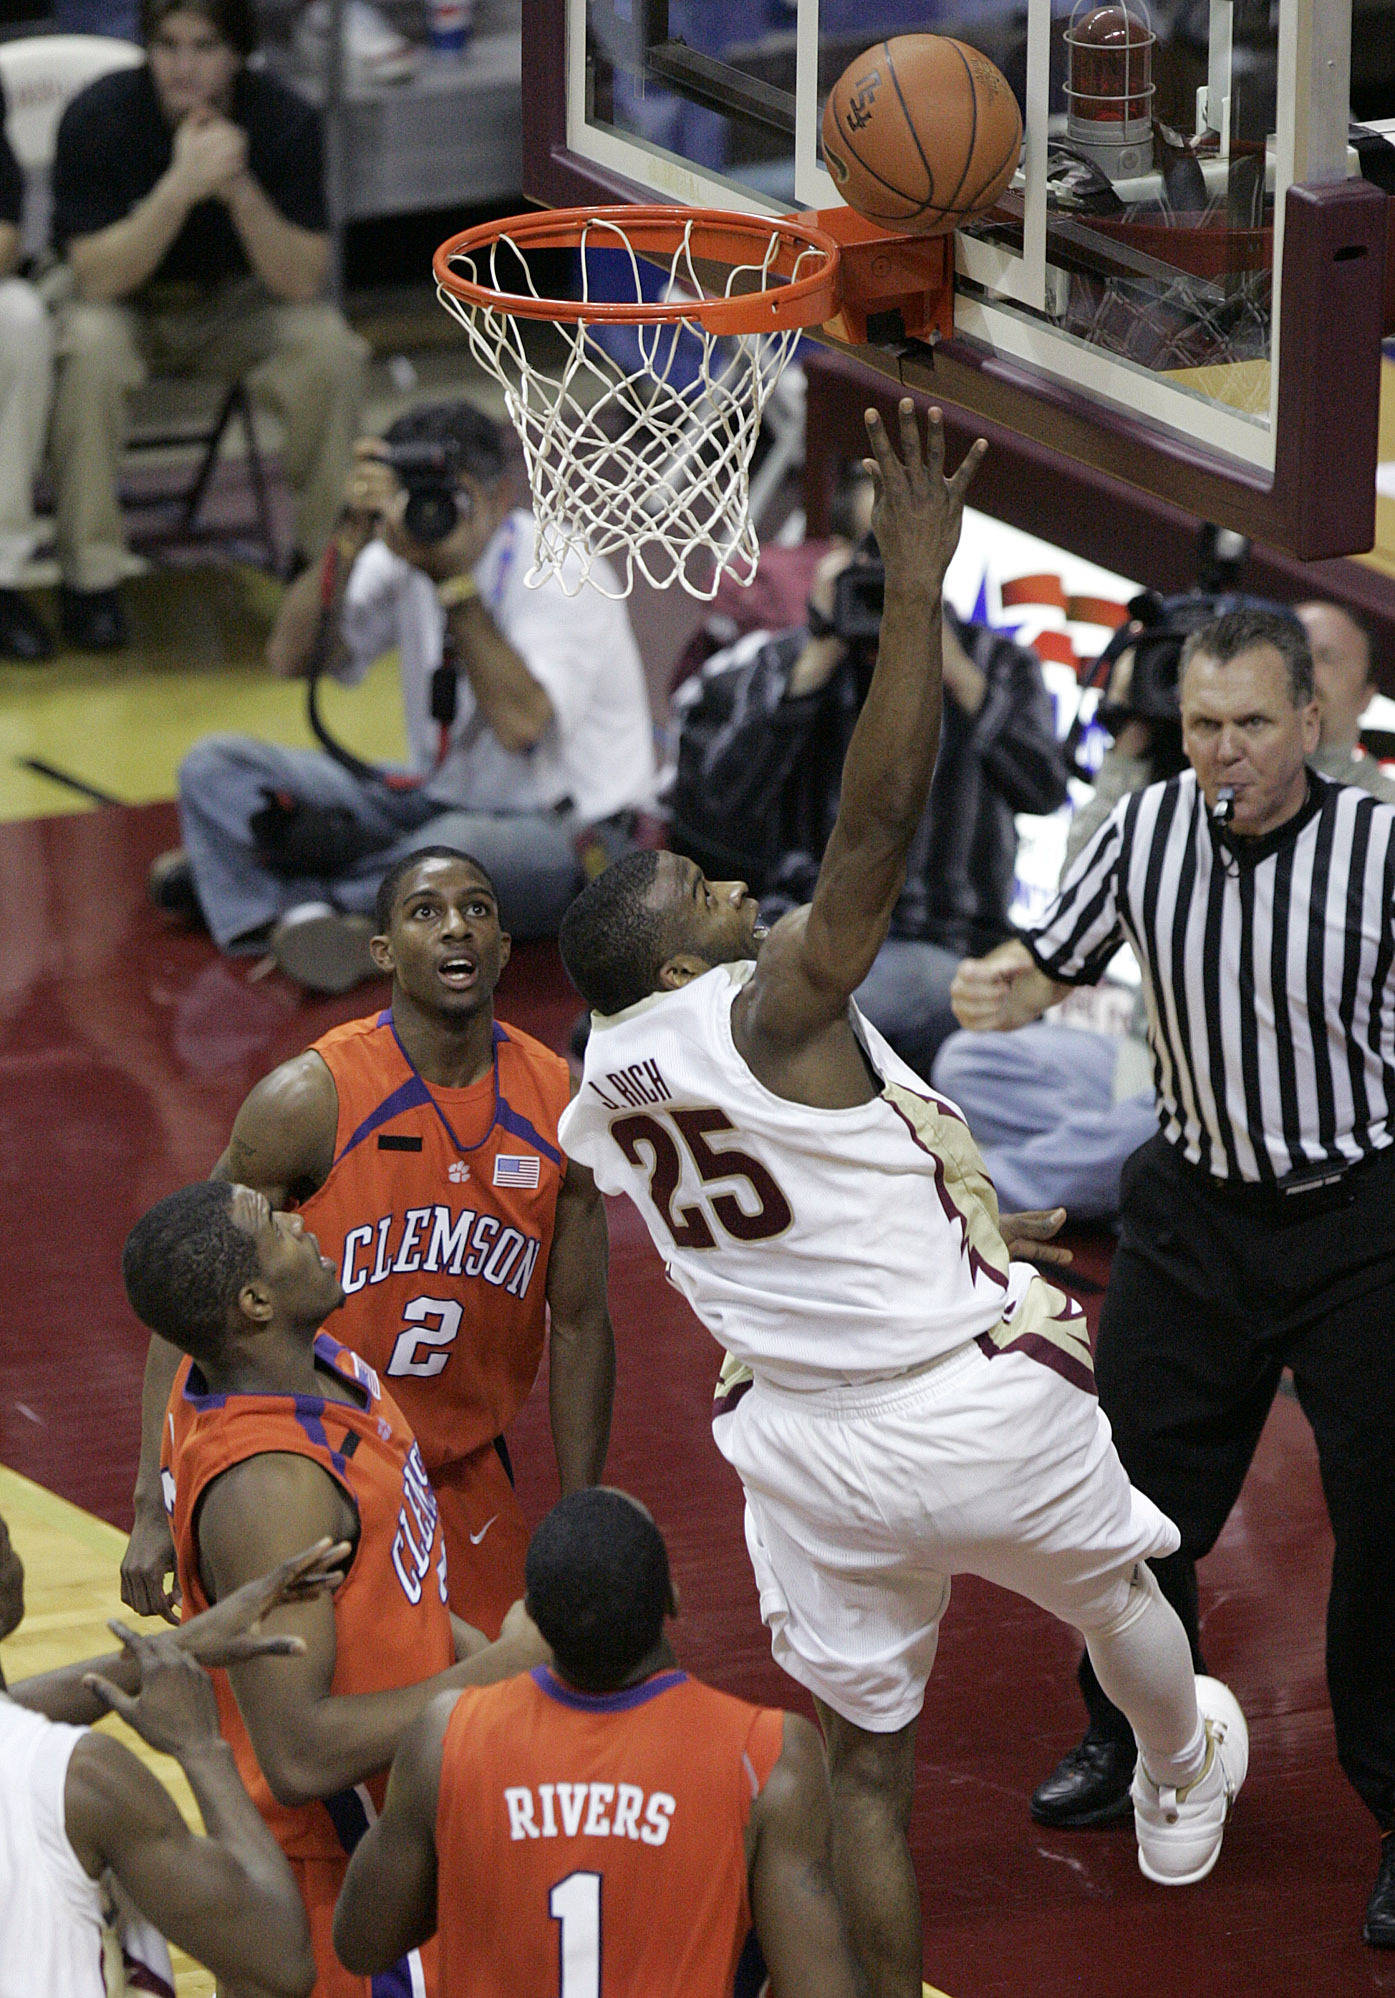 Florida State's Jason Rich scores after being fouled by Clemson's Trevor Booker, middle at left, during the second half of a basketball game Tuesday, Feb. 19, 2008, in Tallahassee, Fla. Also defending for Clemson are K.C. Rivers (1) and Demontez Stitt (2). Florida State won 64-55. (AP Photo/Steve Cannon)